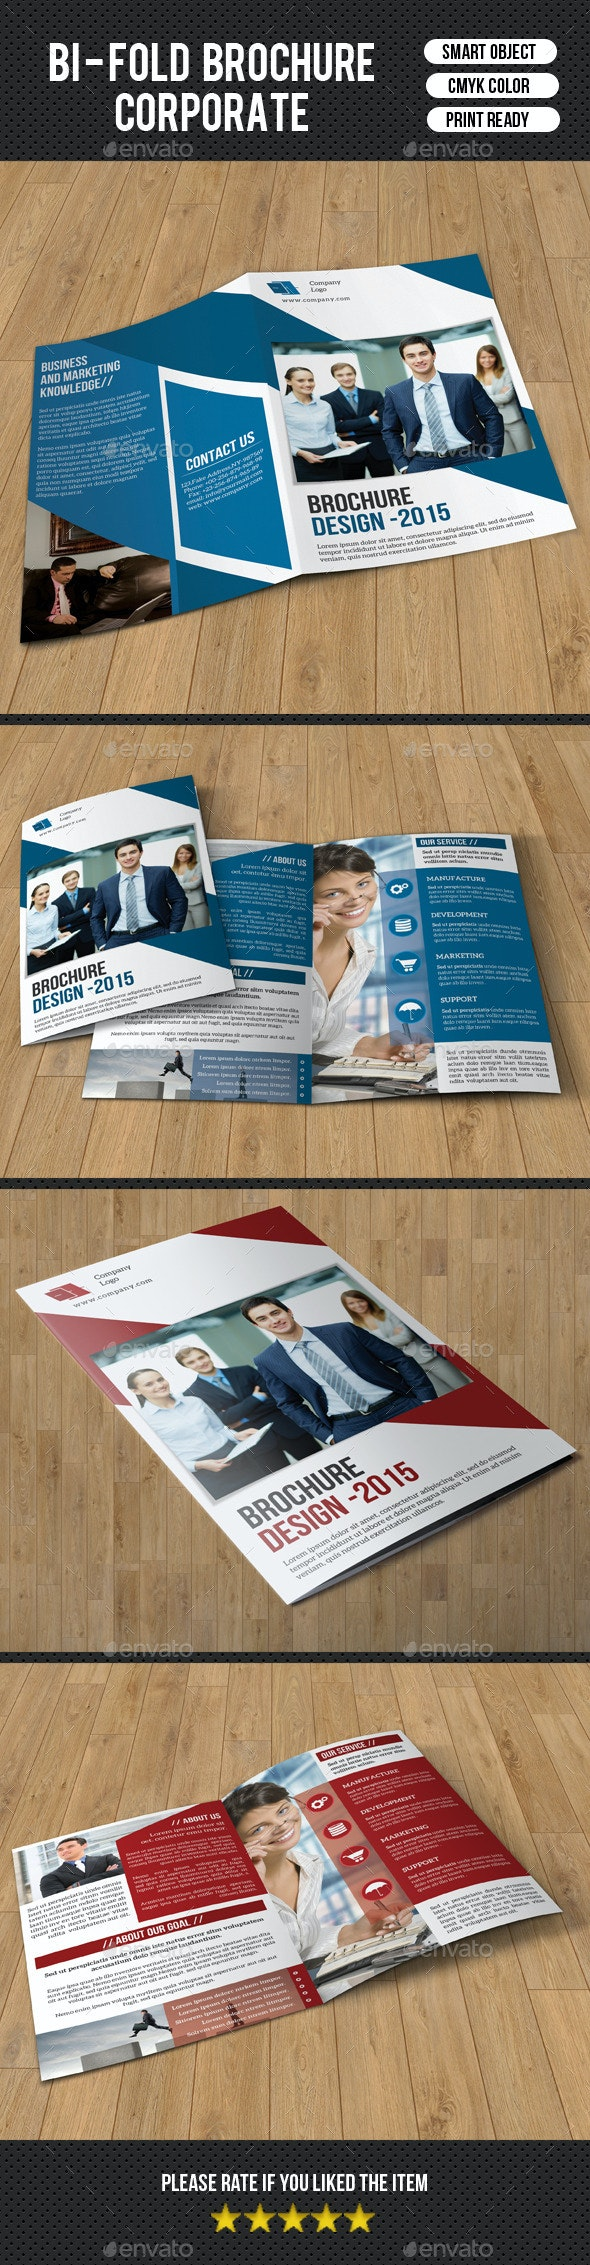 Corporate Bifold Brochure-V180 - Corporate Brochures